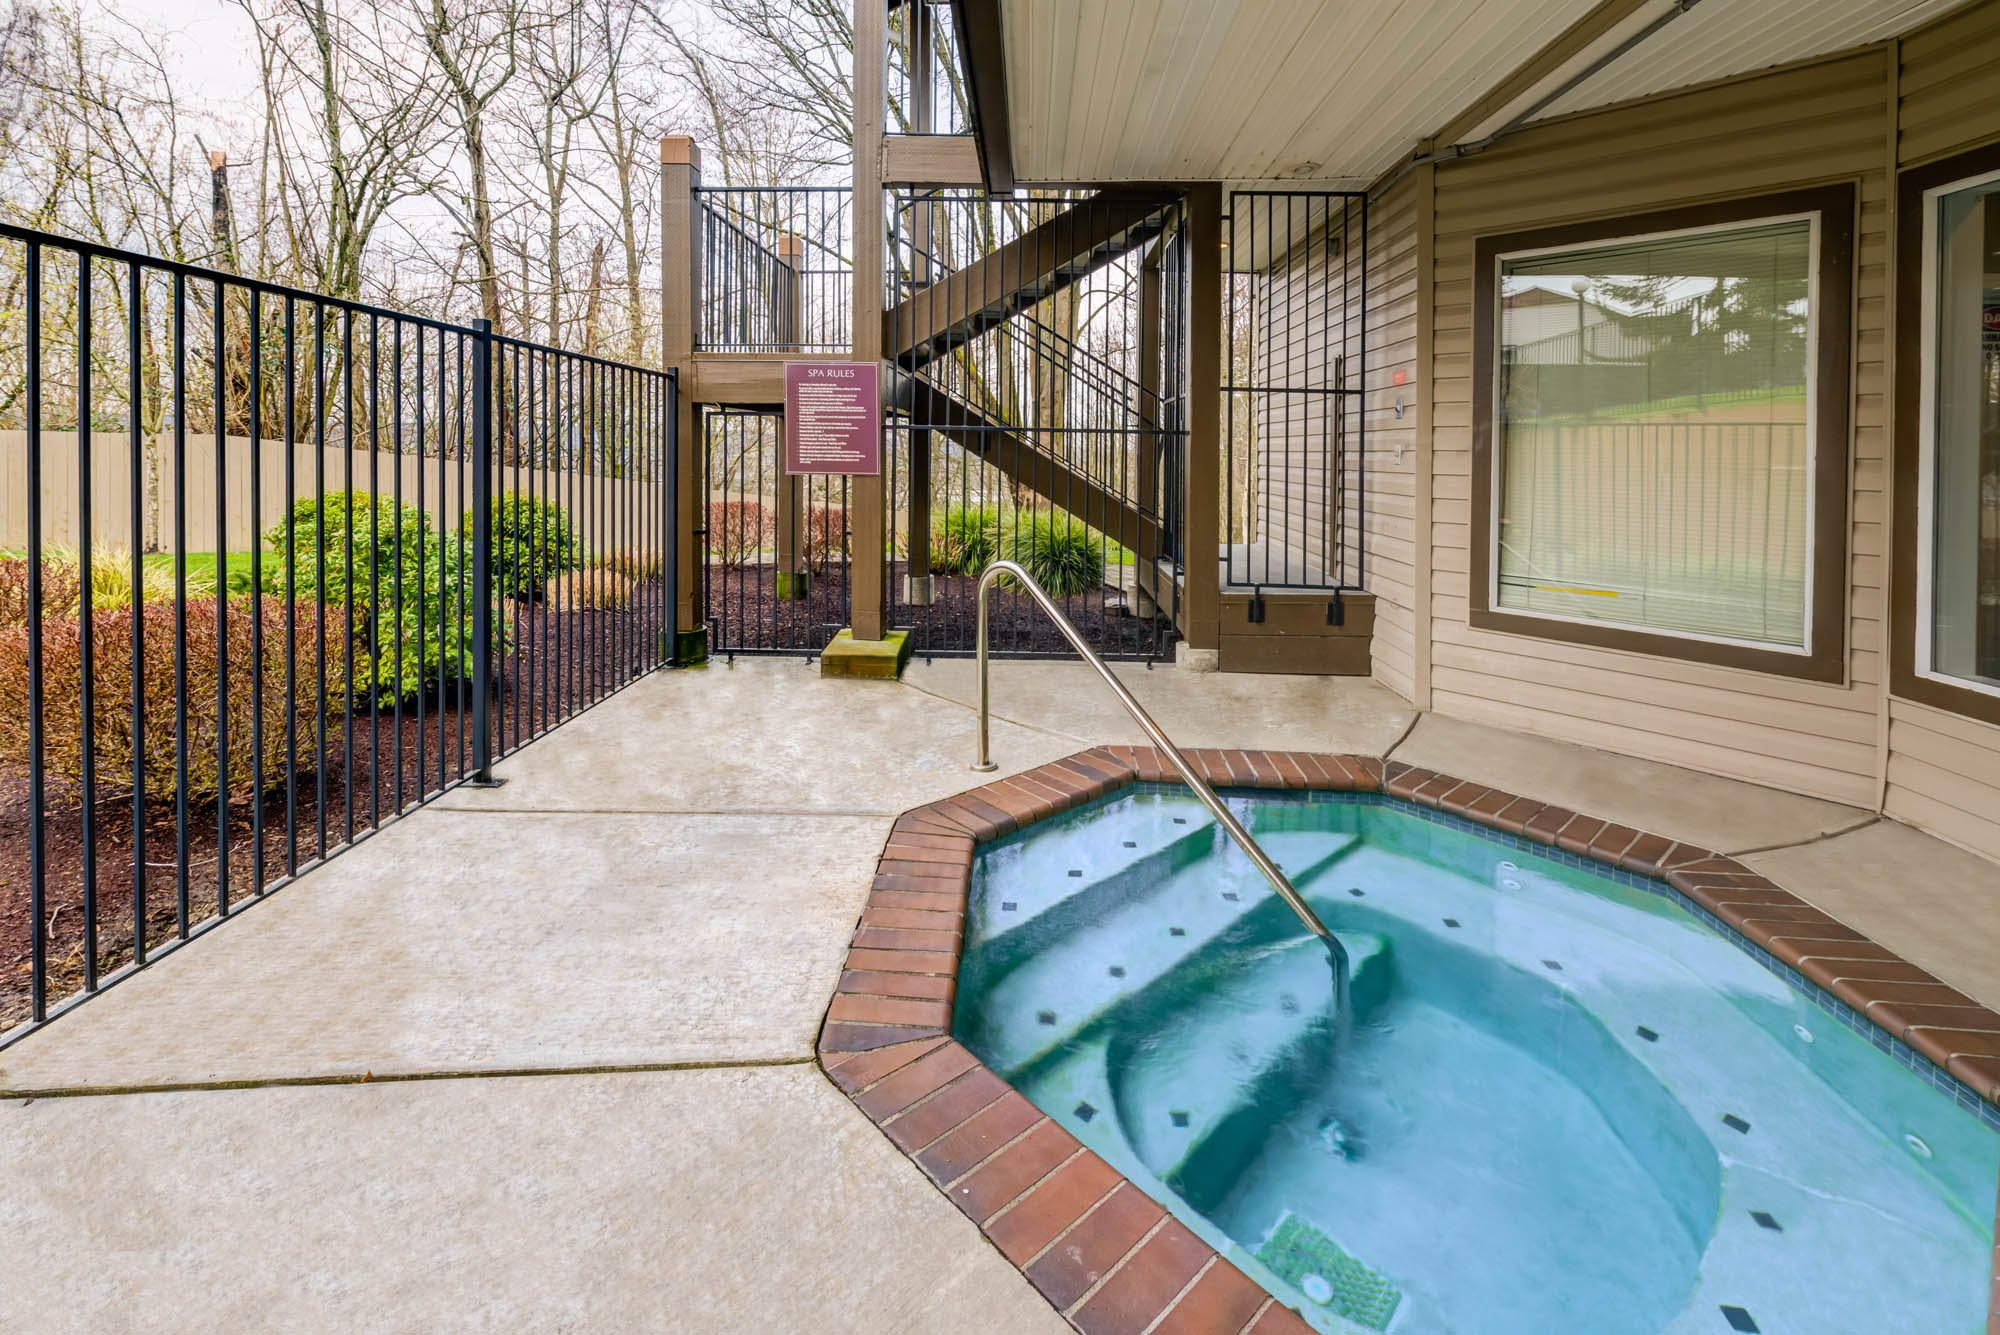 Pool Cabana & Outdoor Entertainment Bar at Westview Village, Renton, WA,98055